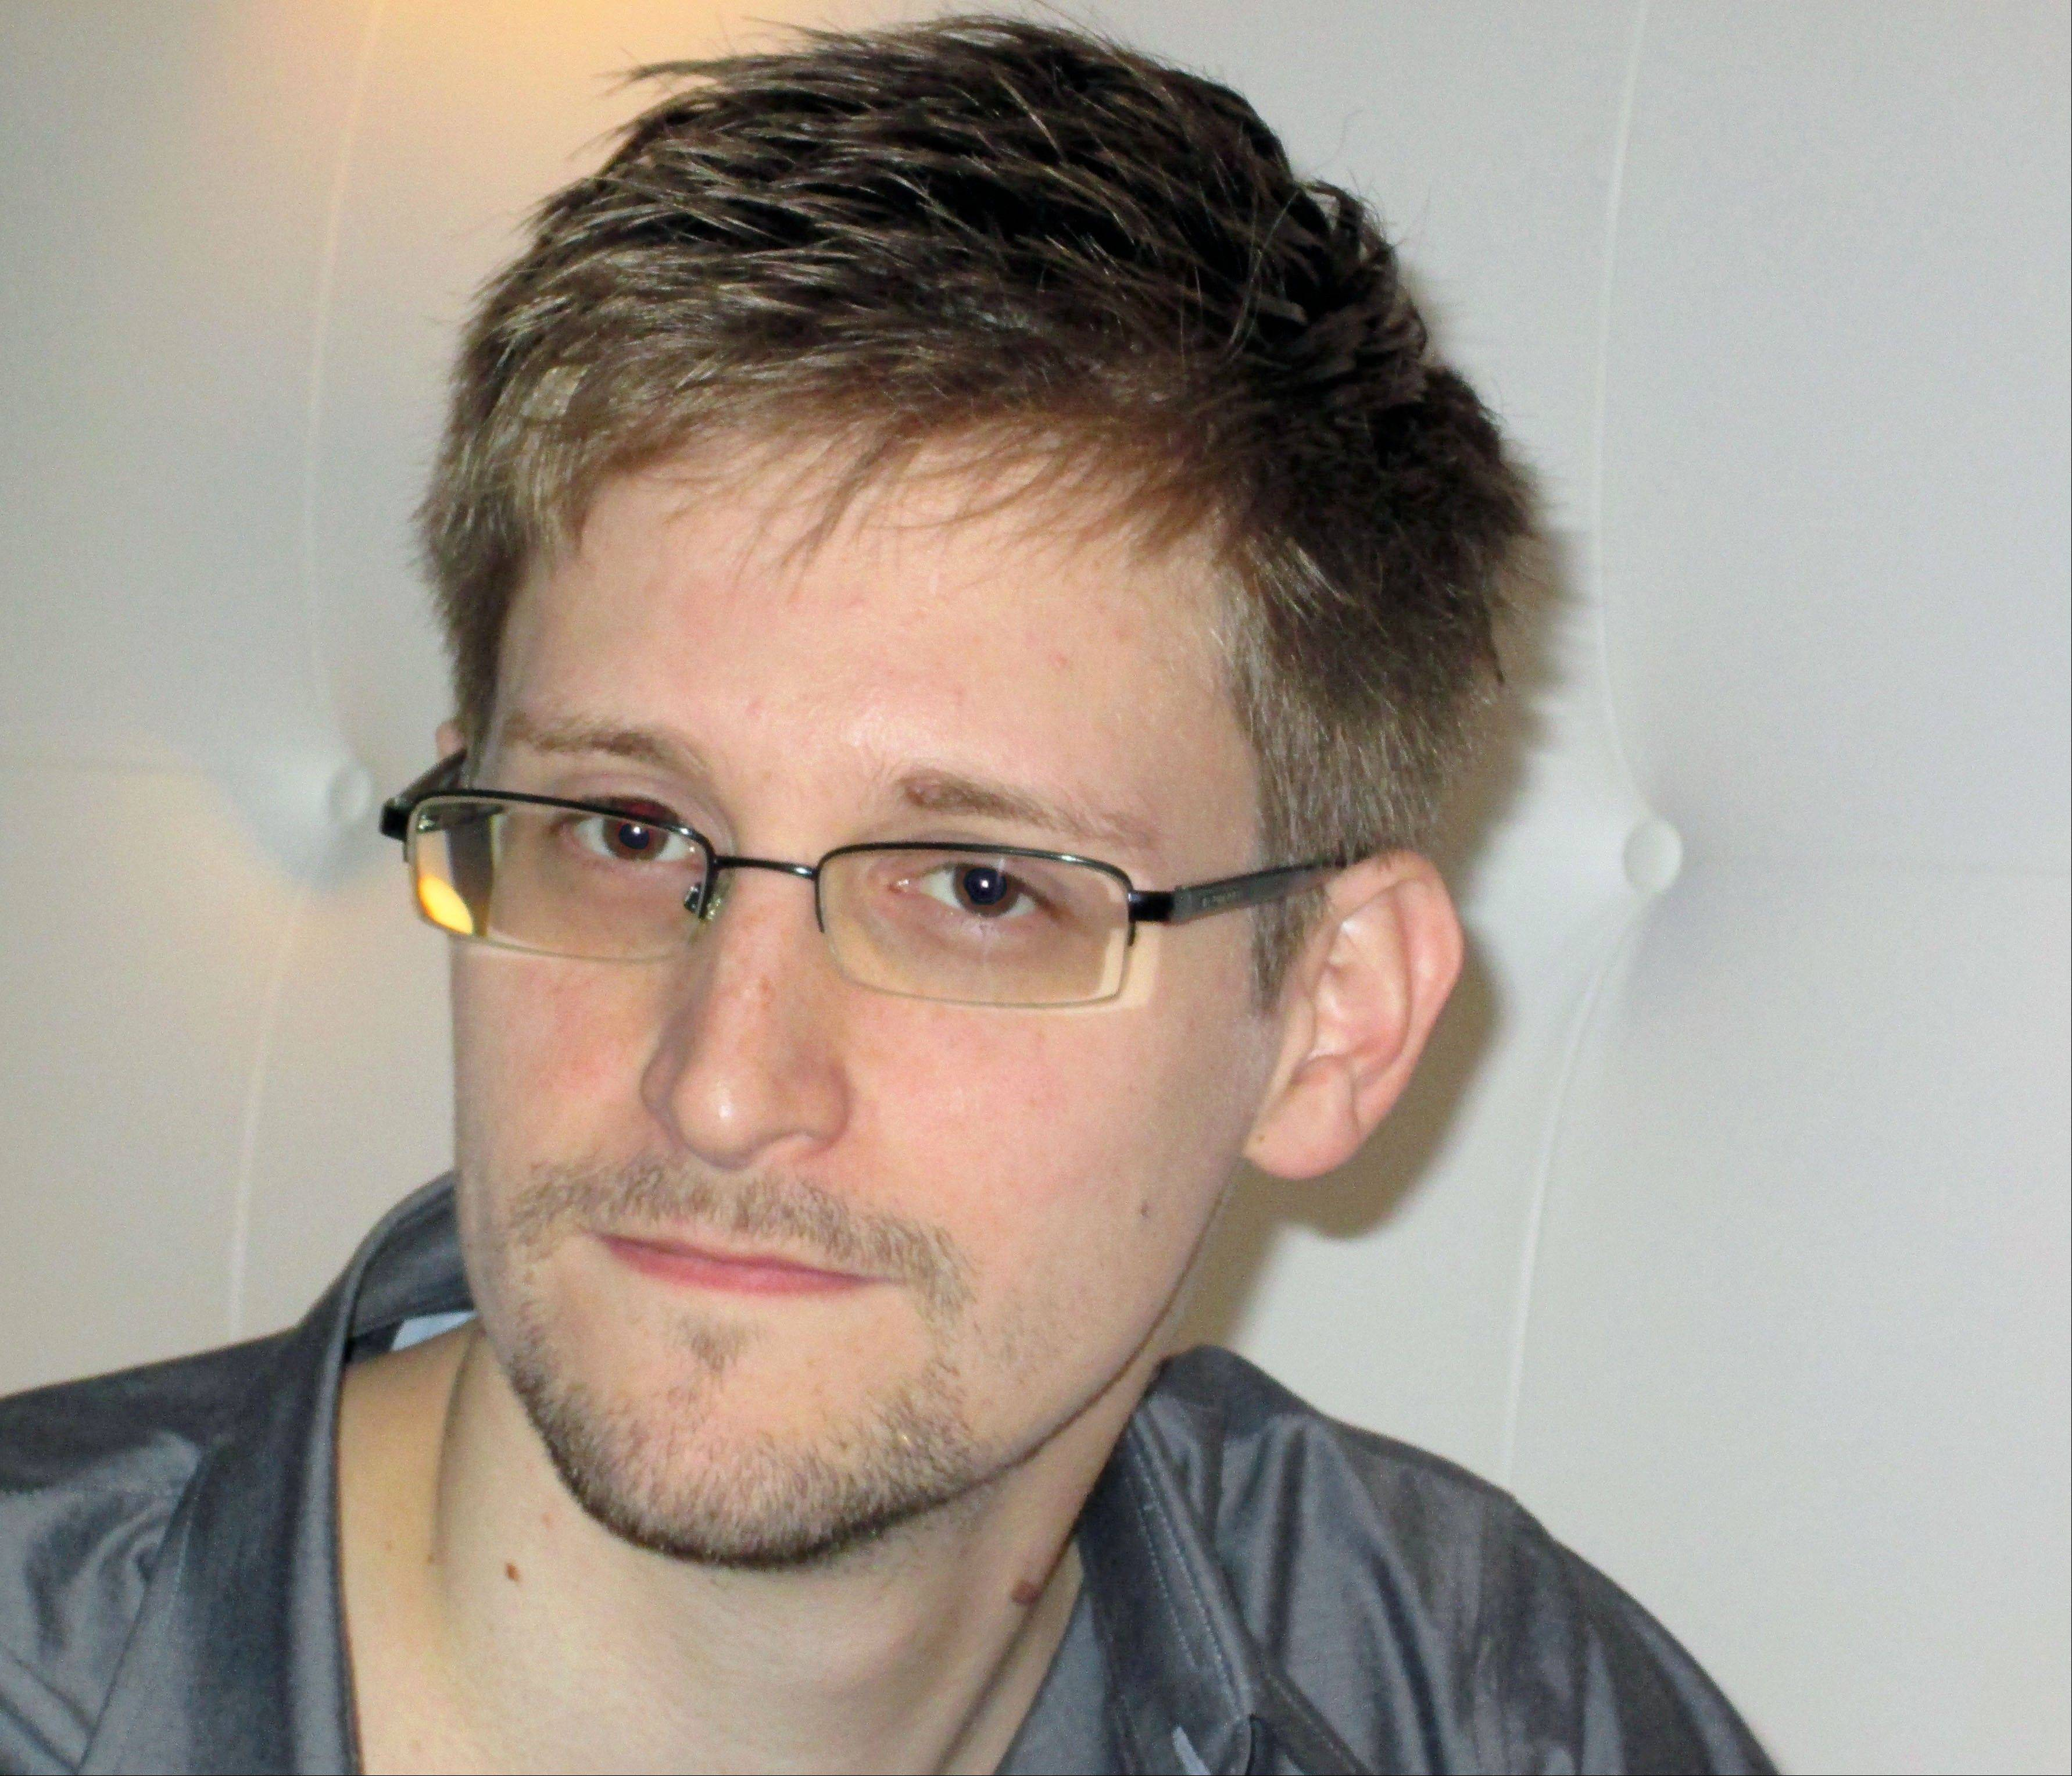 Edward Snowden, 29, worked as a contract employee at the National Security Agency and is the source of The Guardian�s disclosures about the U.S. government�s secret surveillance programs, as the British newspaper reported Sunday.